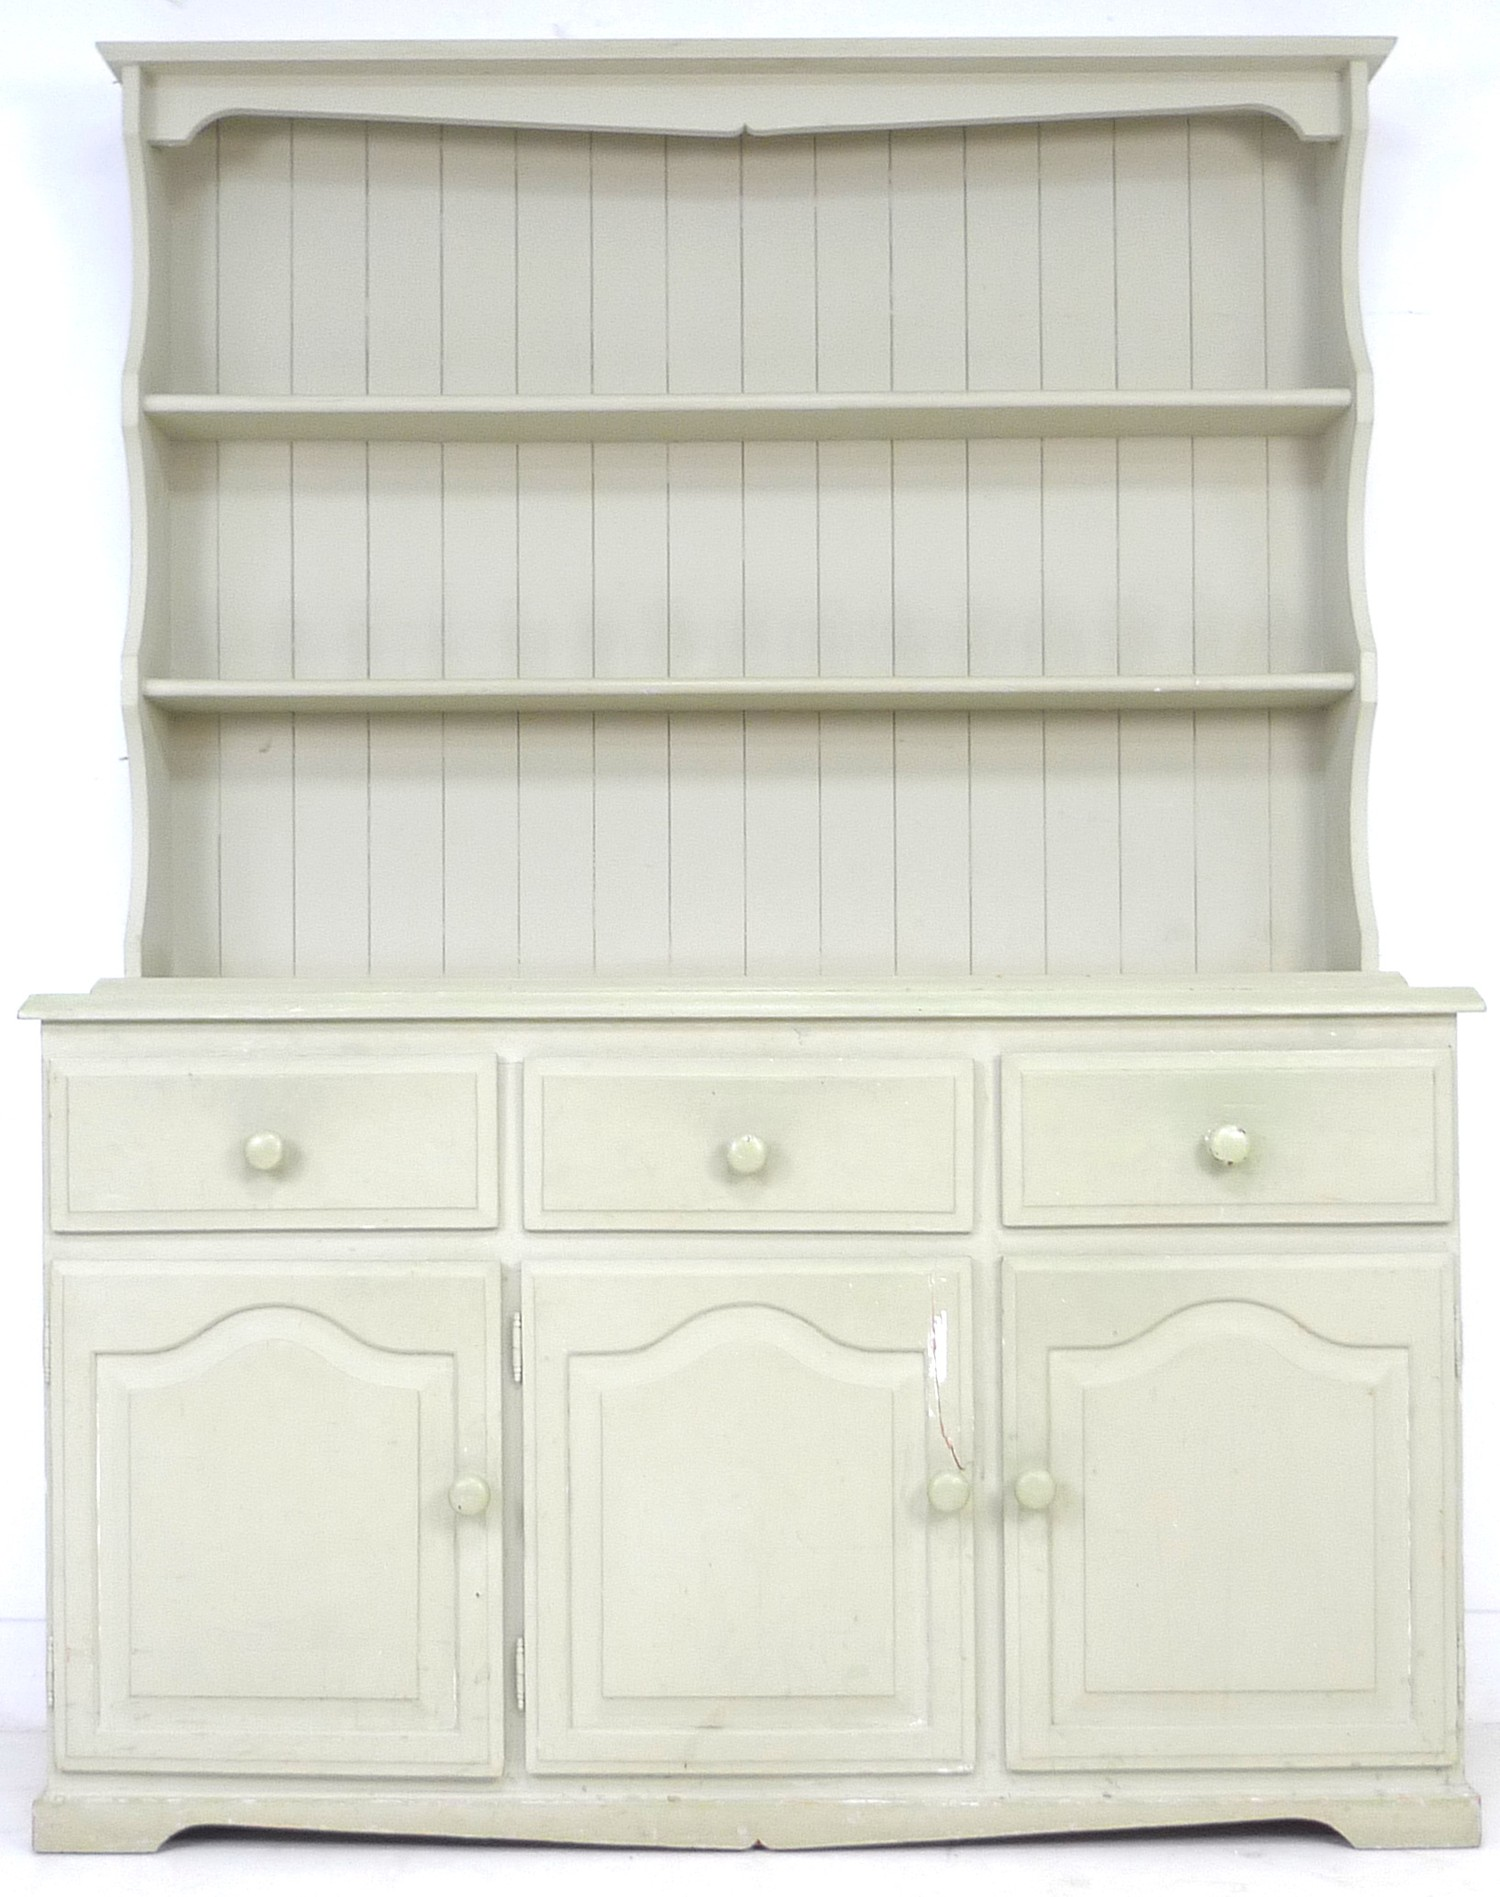 A modern pine pale green painted dresser, with plate rack over three drawers and three cupboards